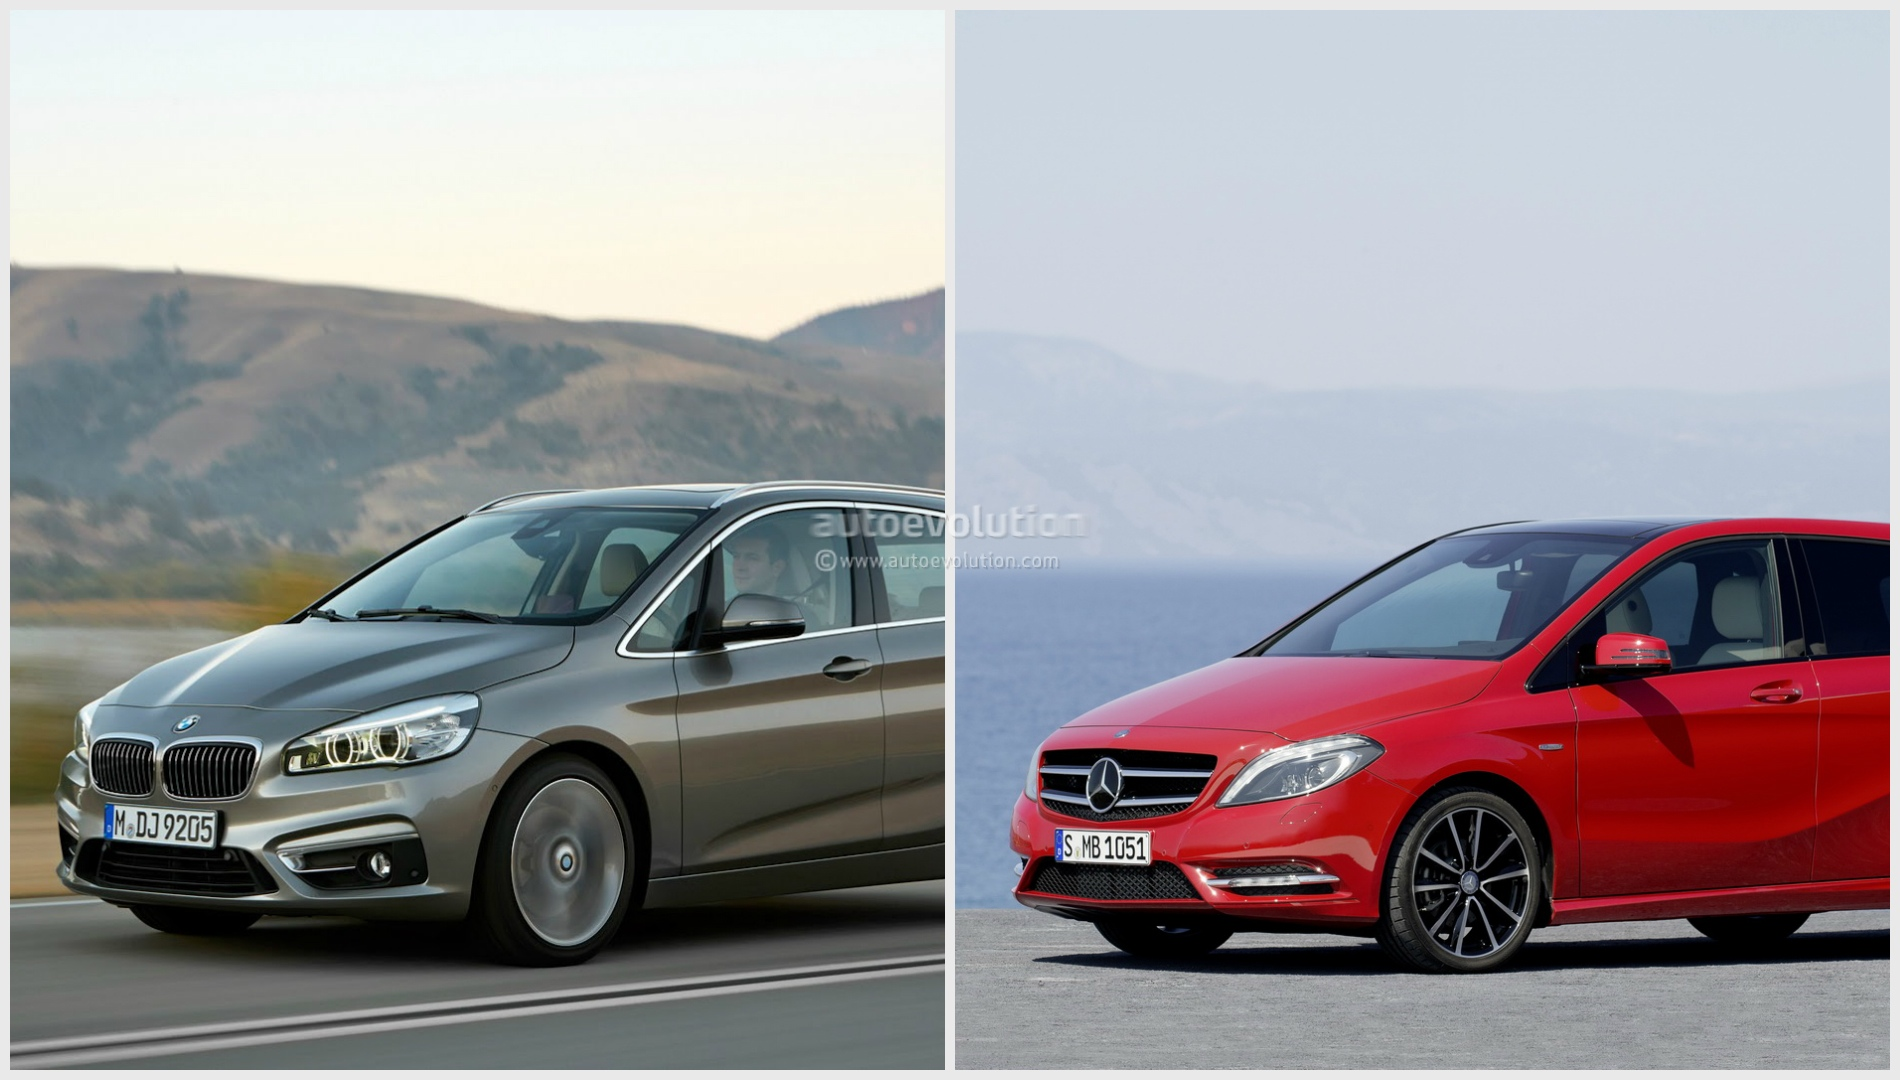 Bmw 2 series vs mercedes benz b class photo comparison for B series mercedes benz